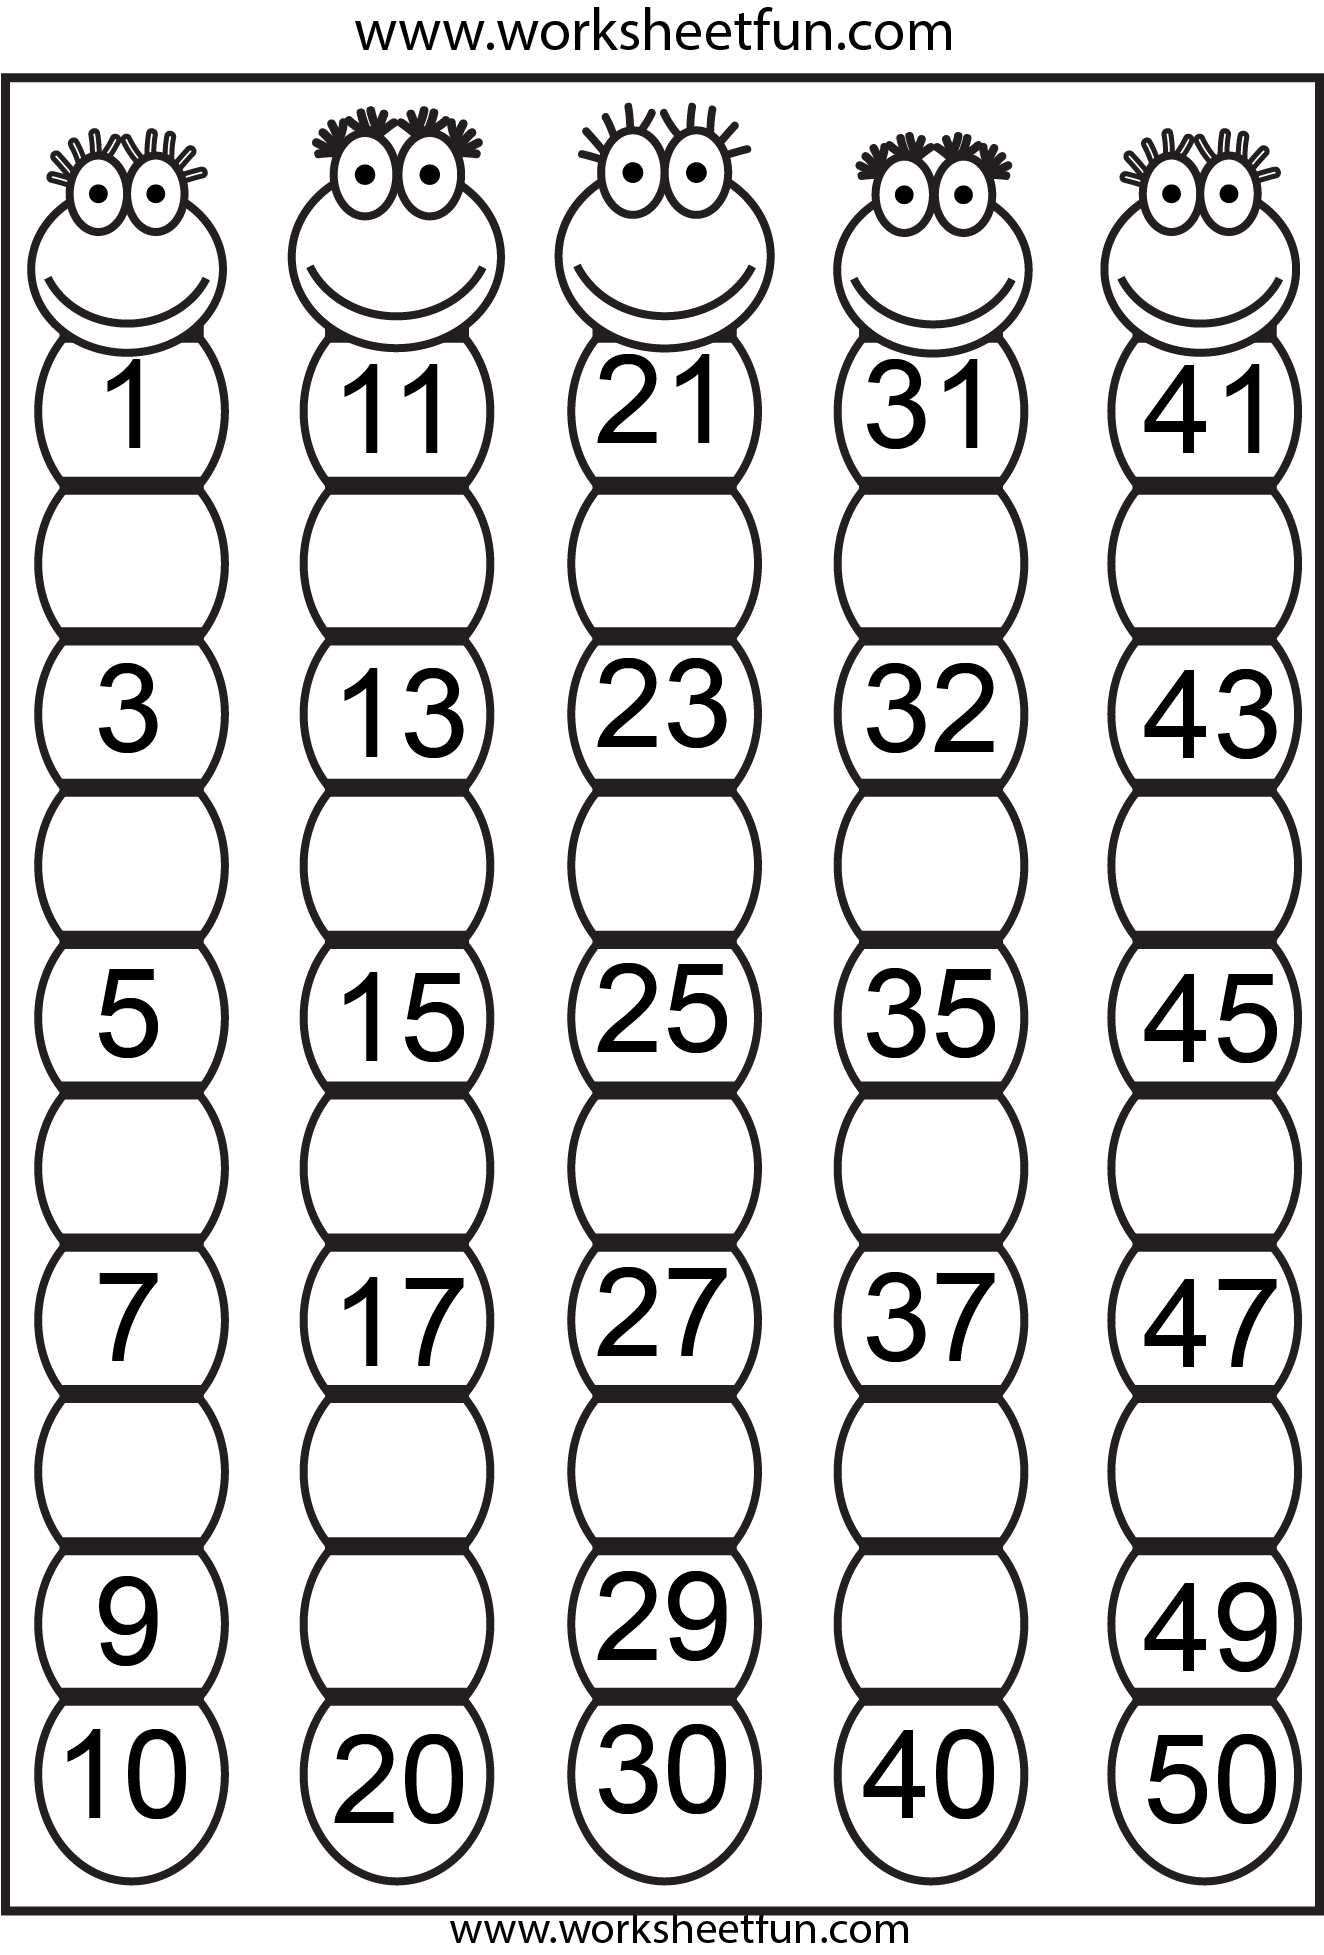 Tions Of Free Worksheets Like This One Missing Numbers 1